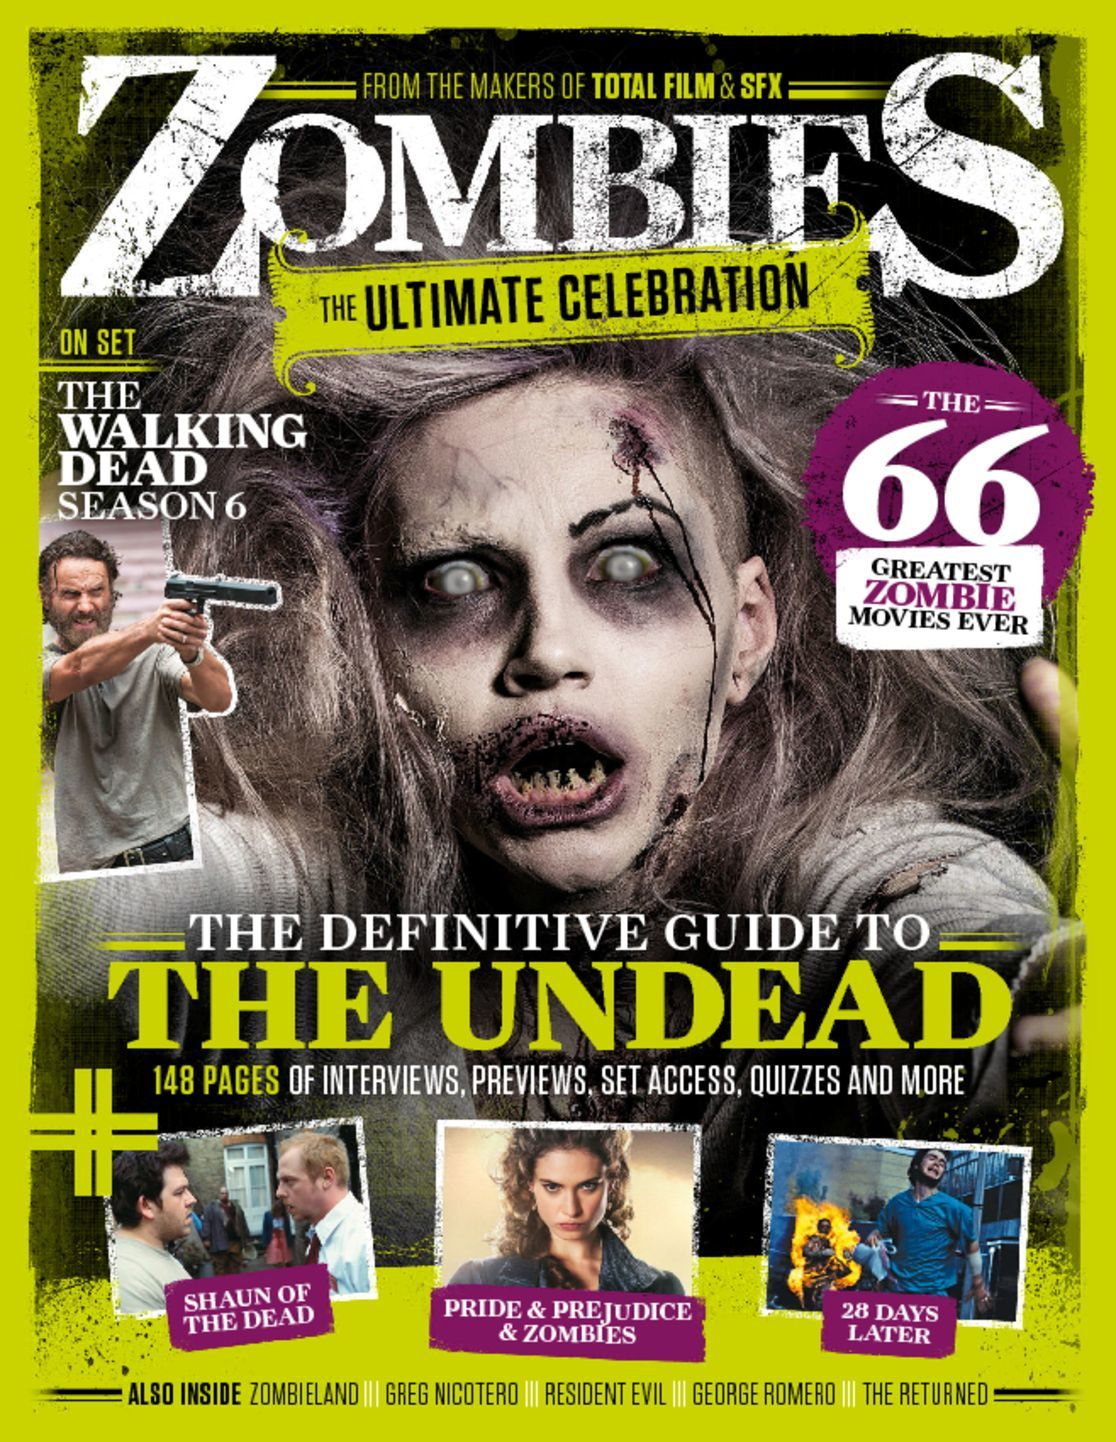 Zombies The Ultimate Celebration Digital